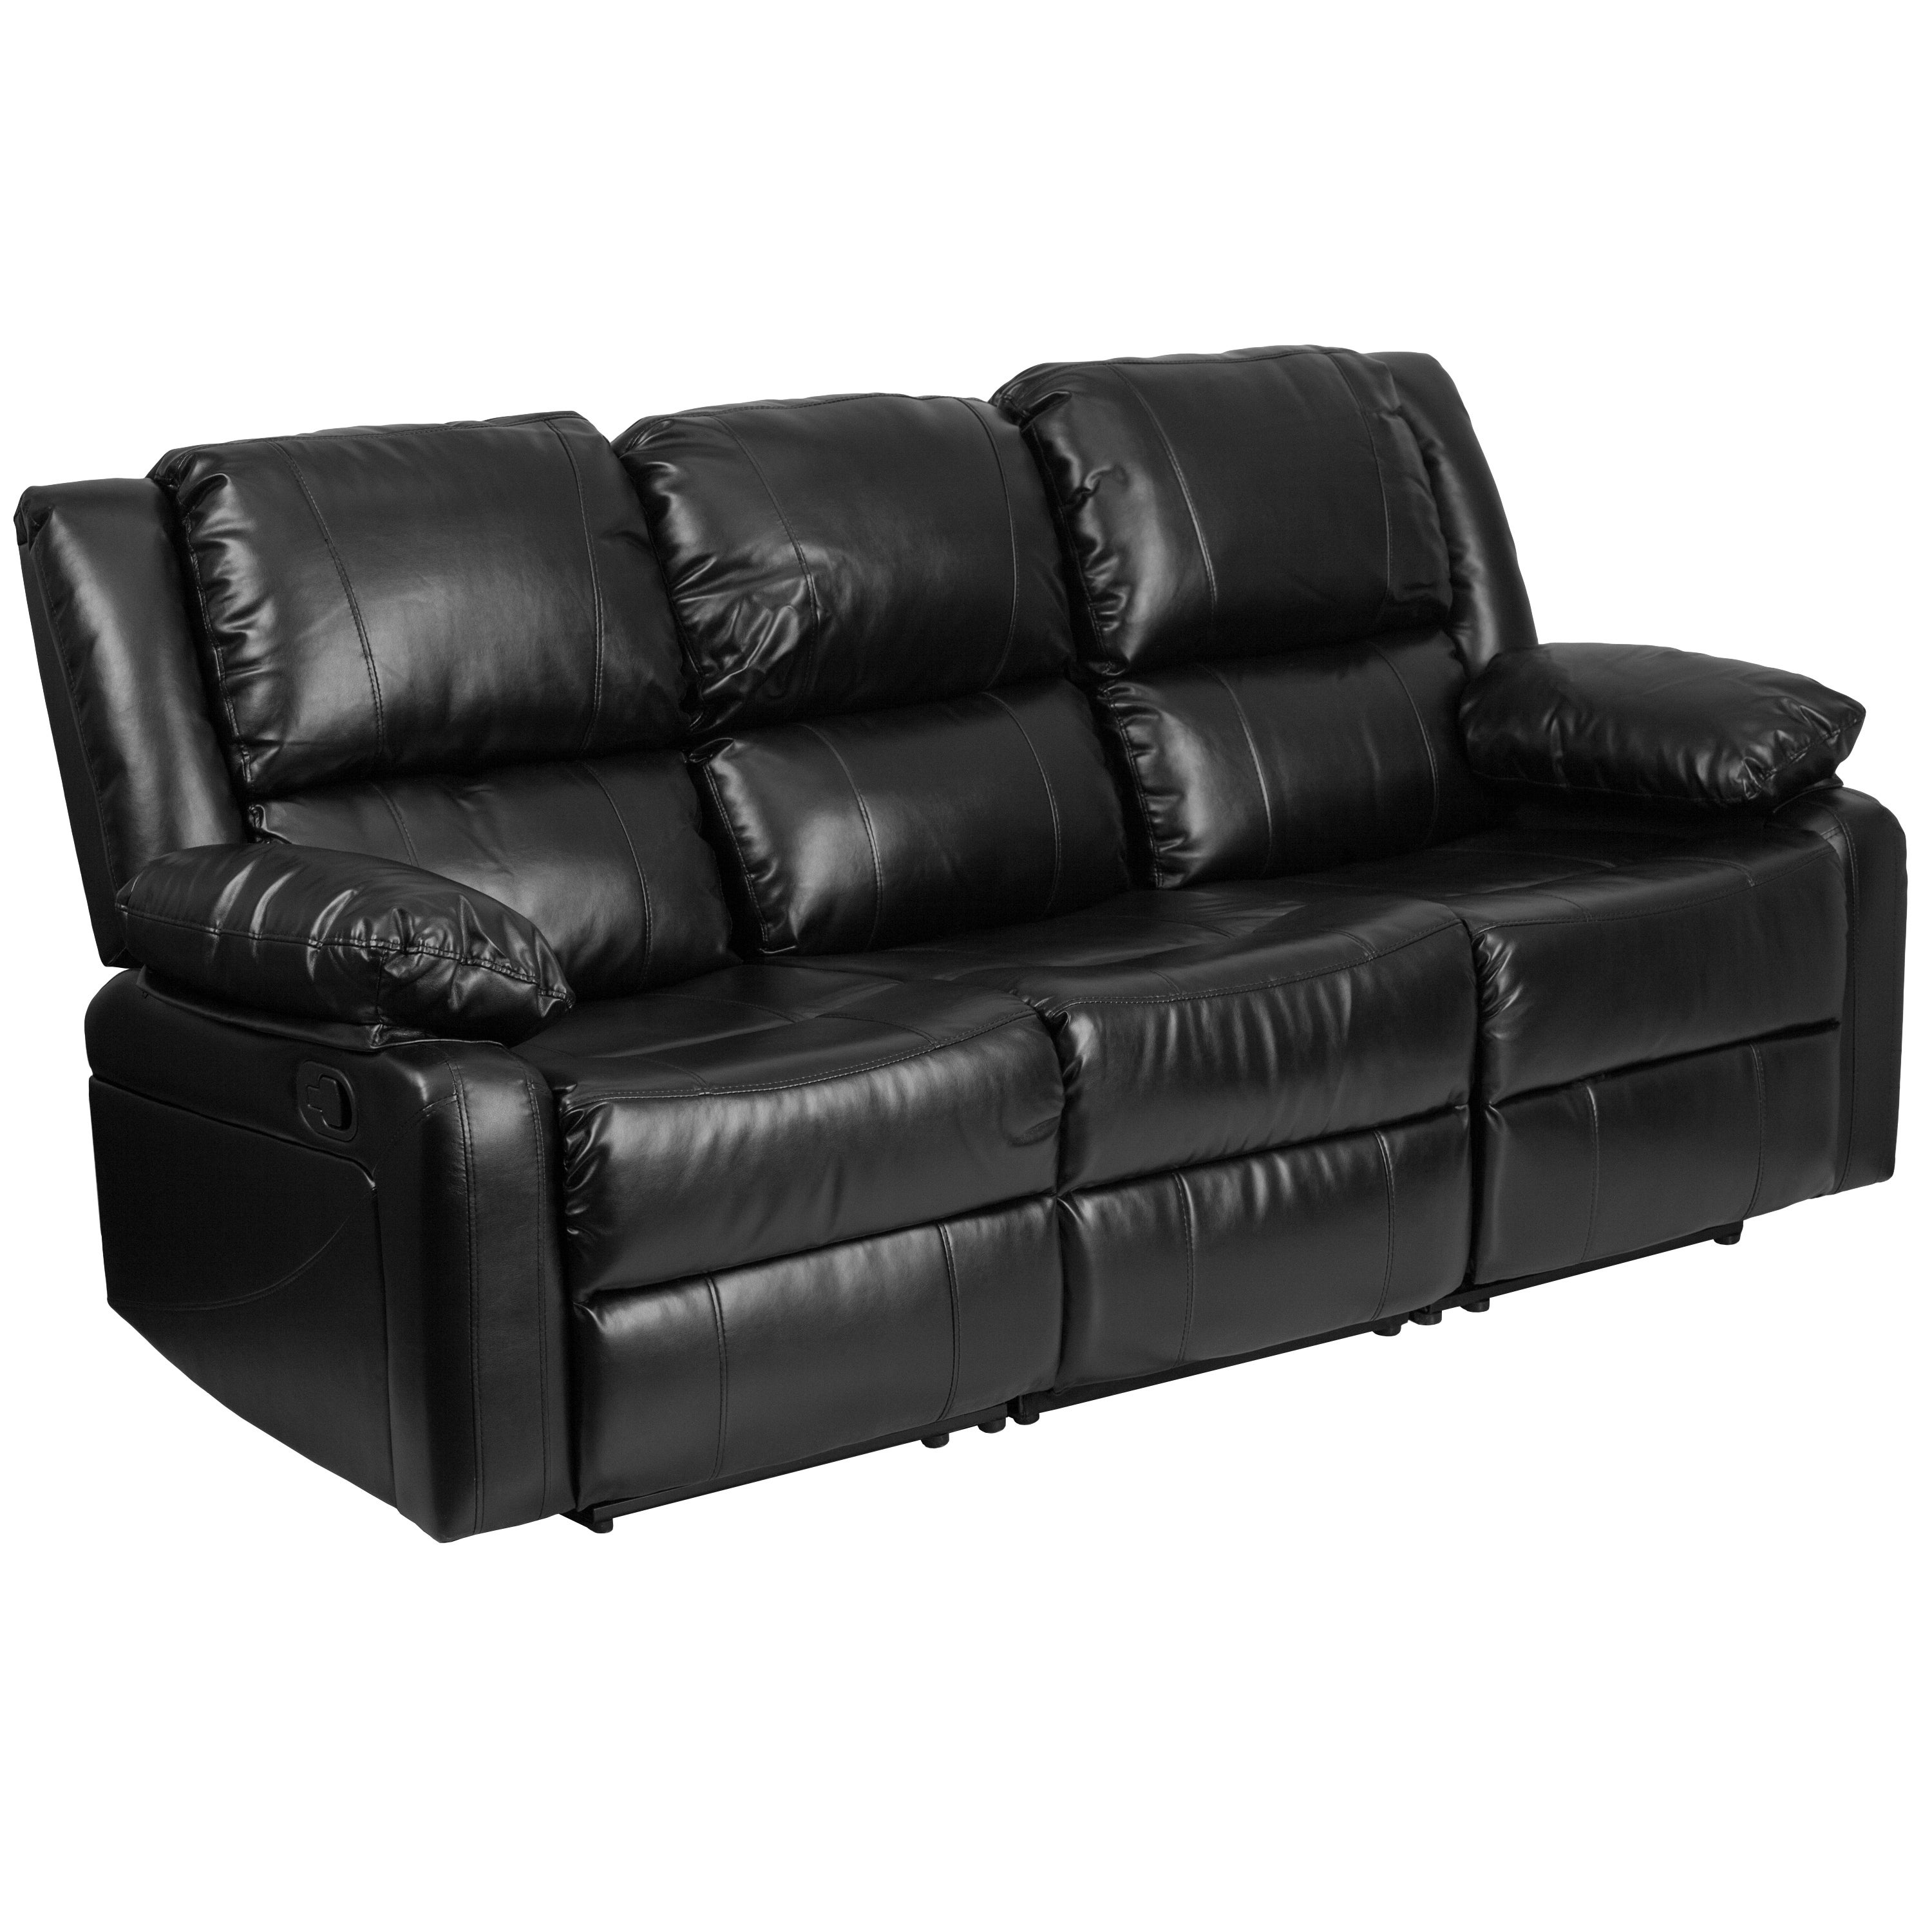 Terrific Copper Grove Malheur Leather Sofa With Two Built In Recliners Machost Co Dining Chair Design Ideas Machostcouk